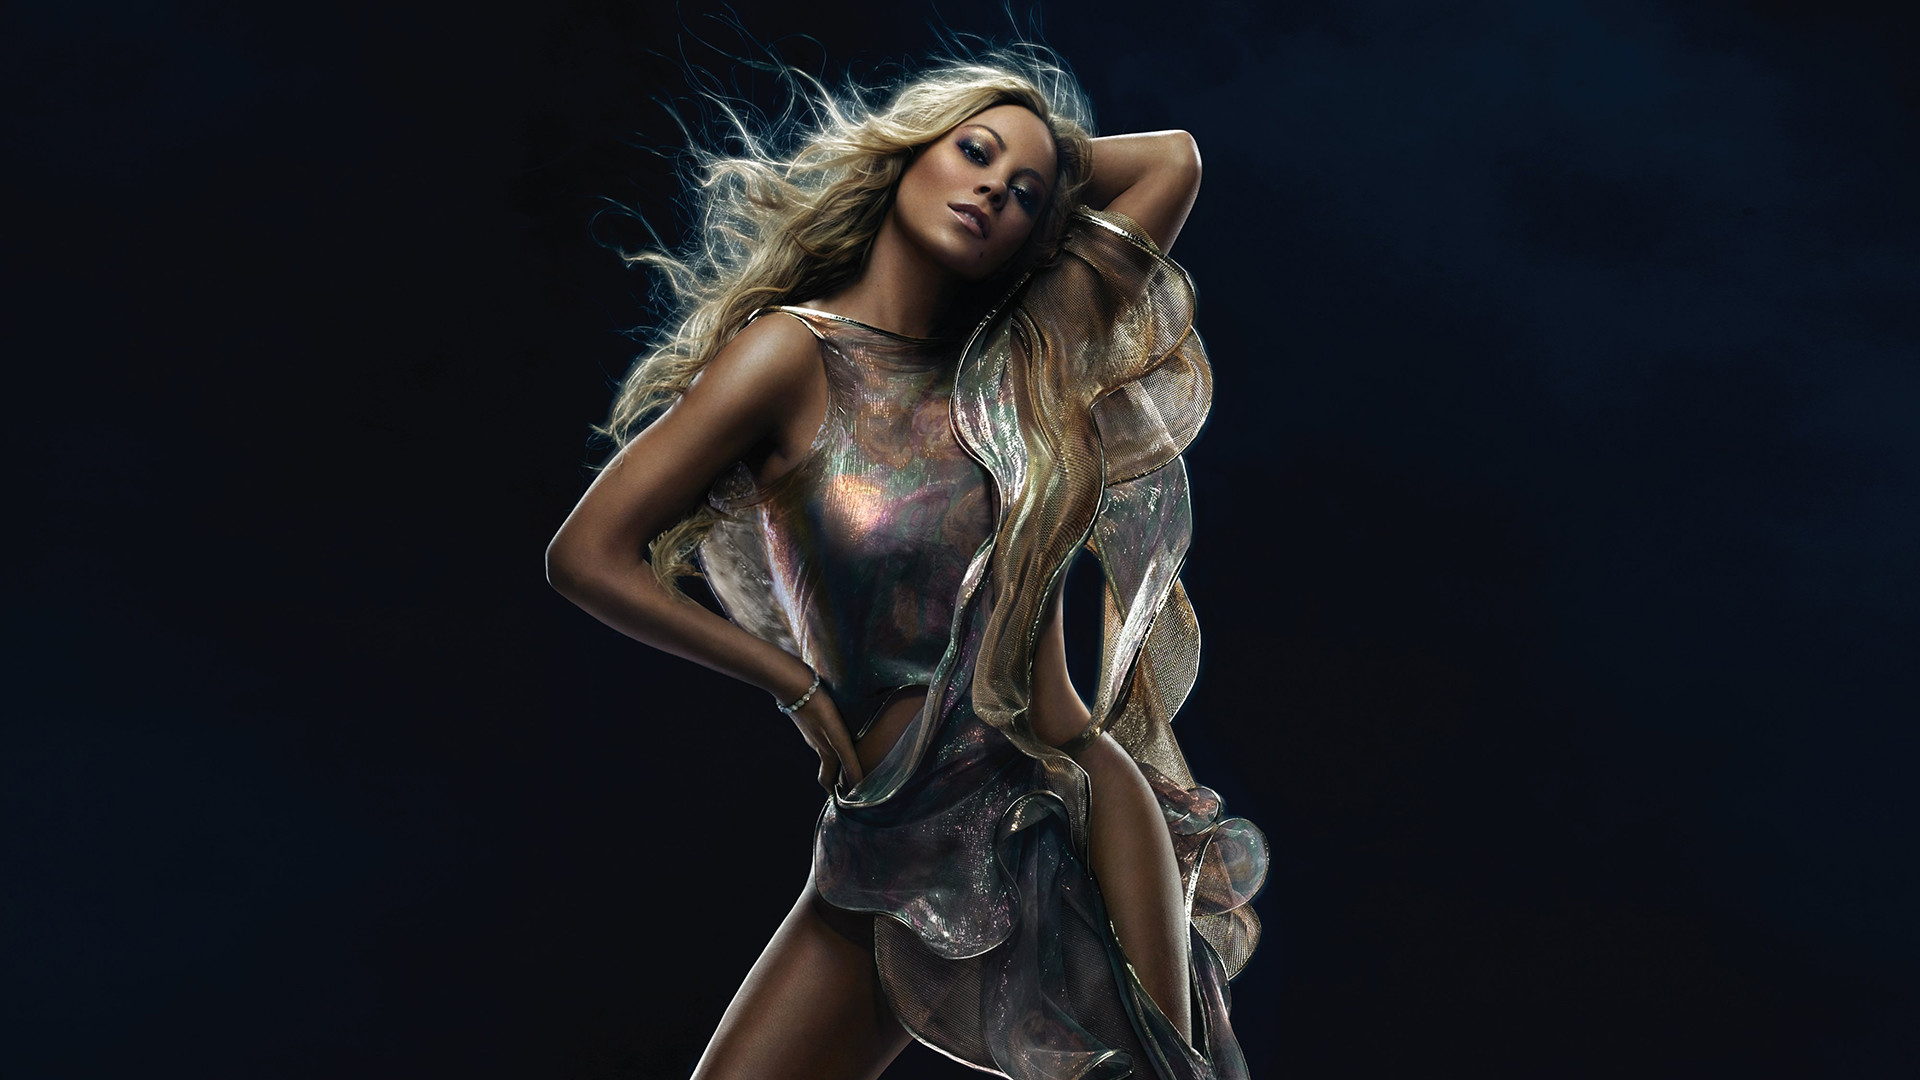 Mariah Carey Wallpapers (51+ pictures)